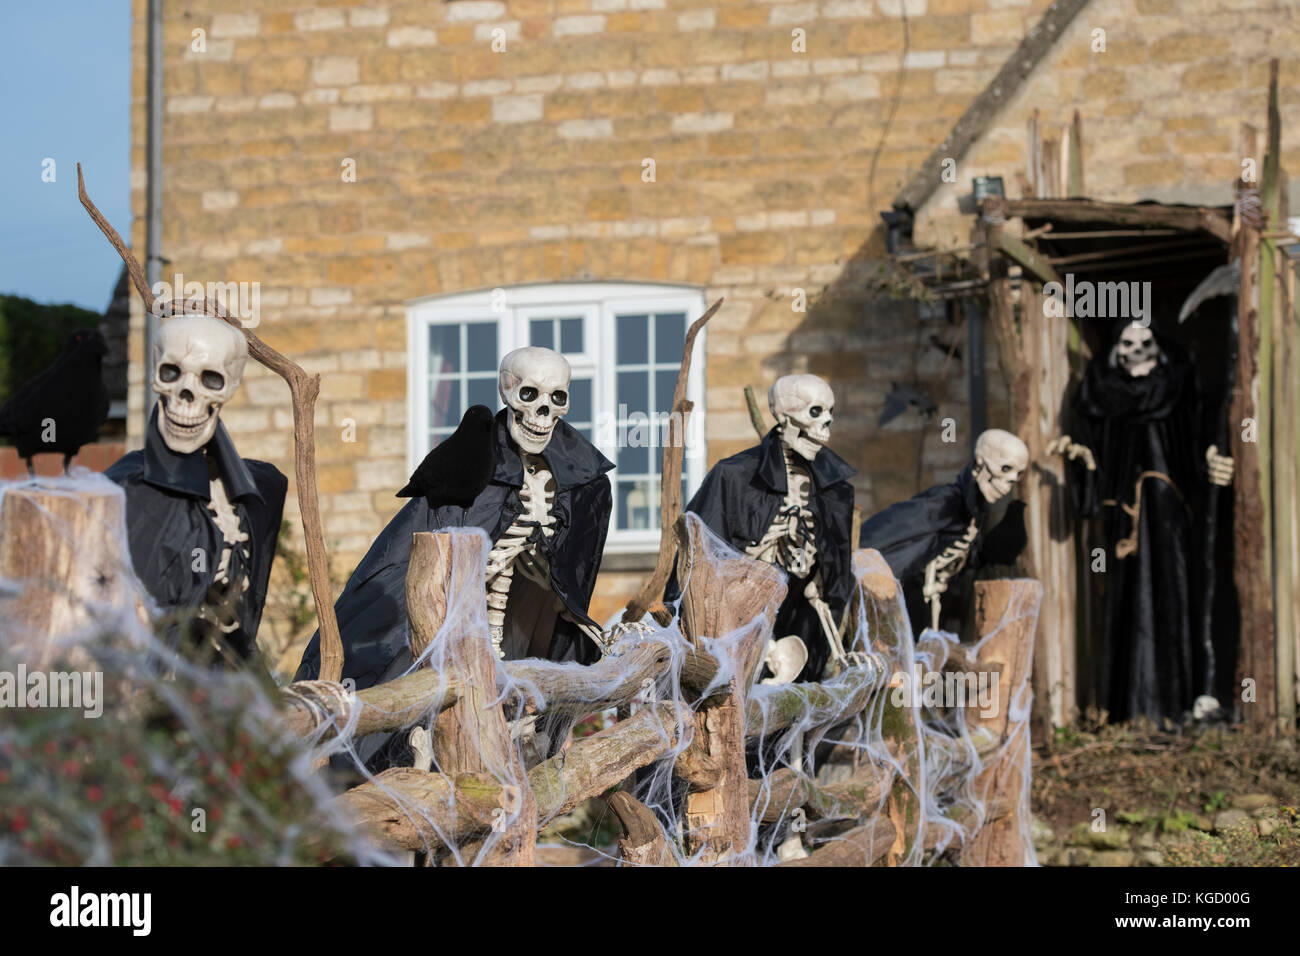 Halloween skeletons and grim reaper outside a house in Snowshill, Cotswolds, Gloucestershire, England - Stock Image